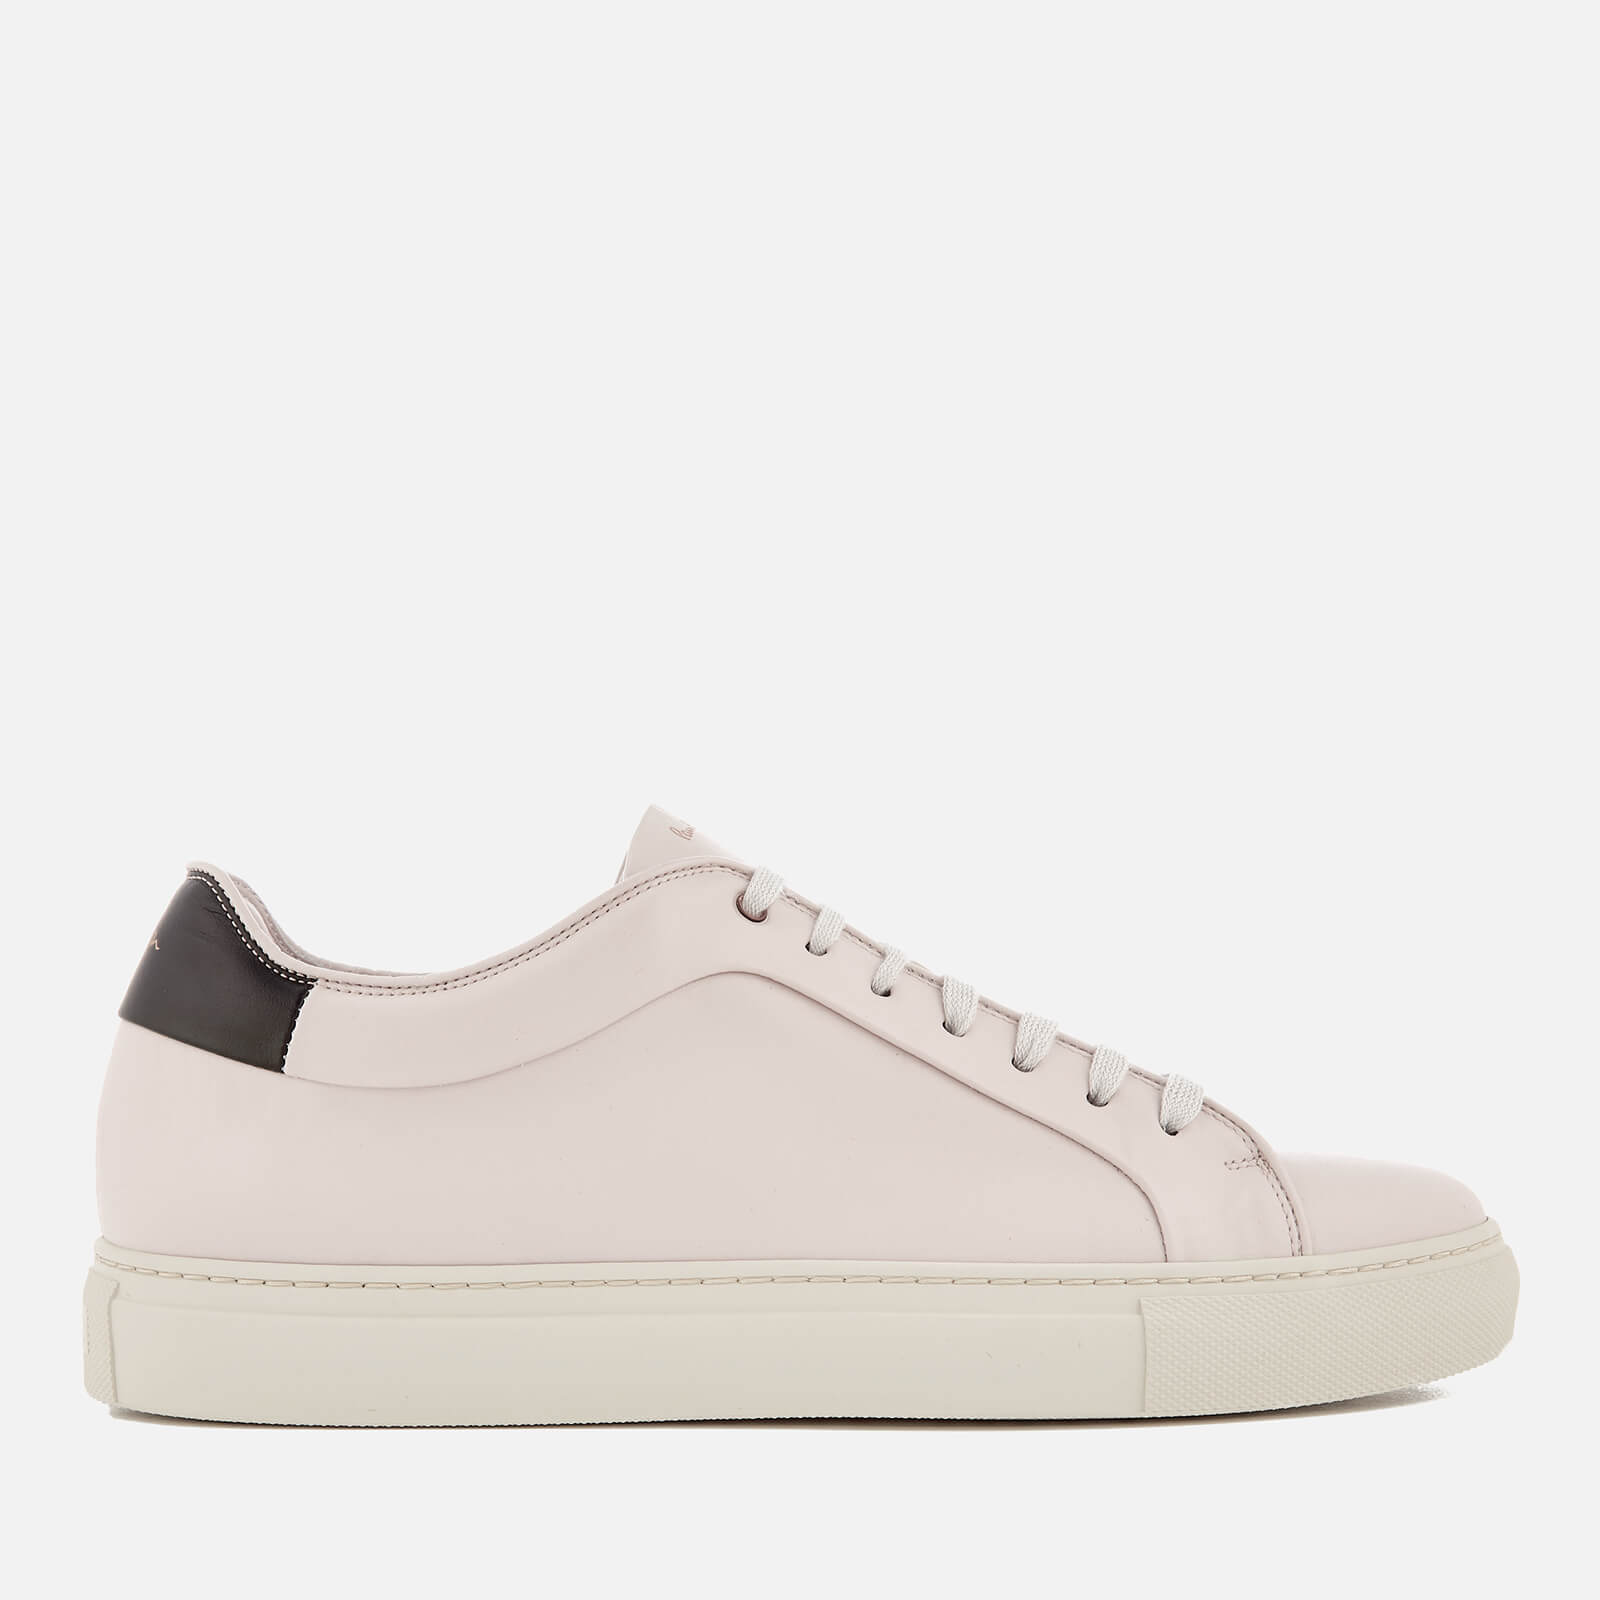 063c32a806 Paul Smith Men's Basso Leather Cupsole Trainers - Quiet White